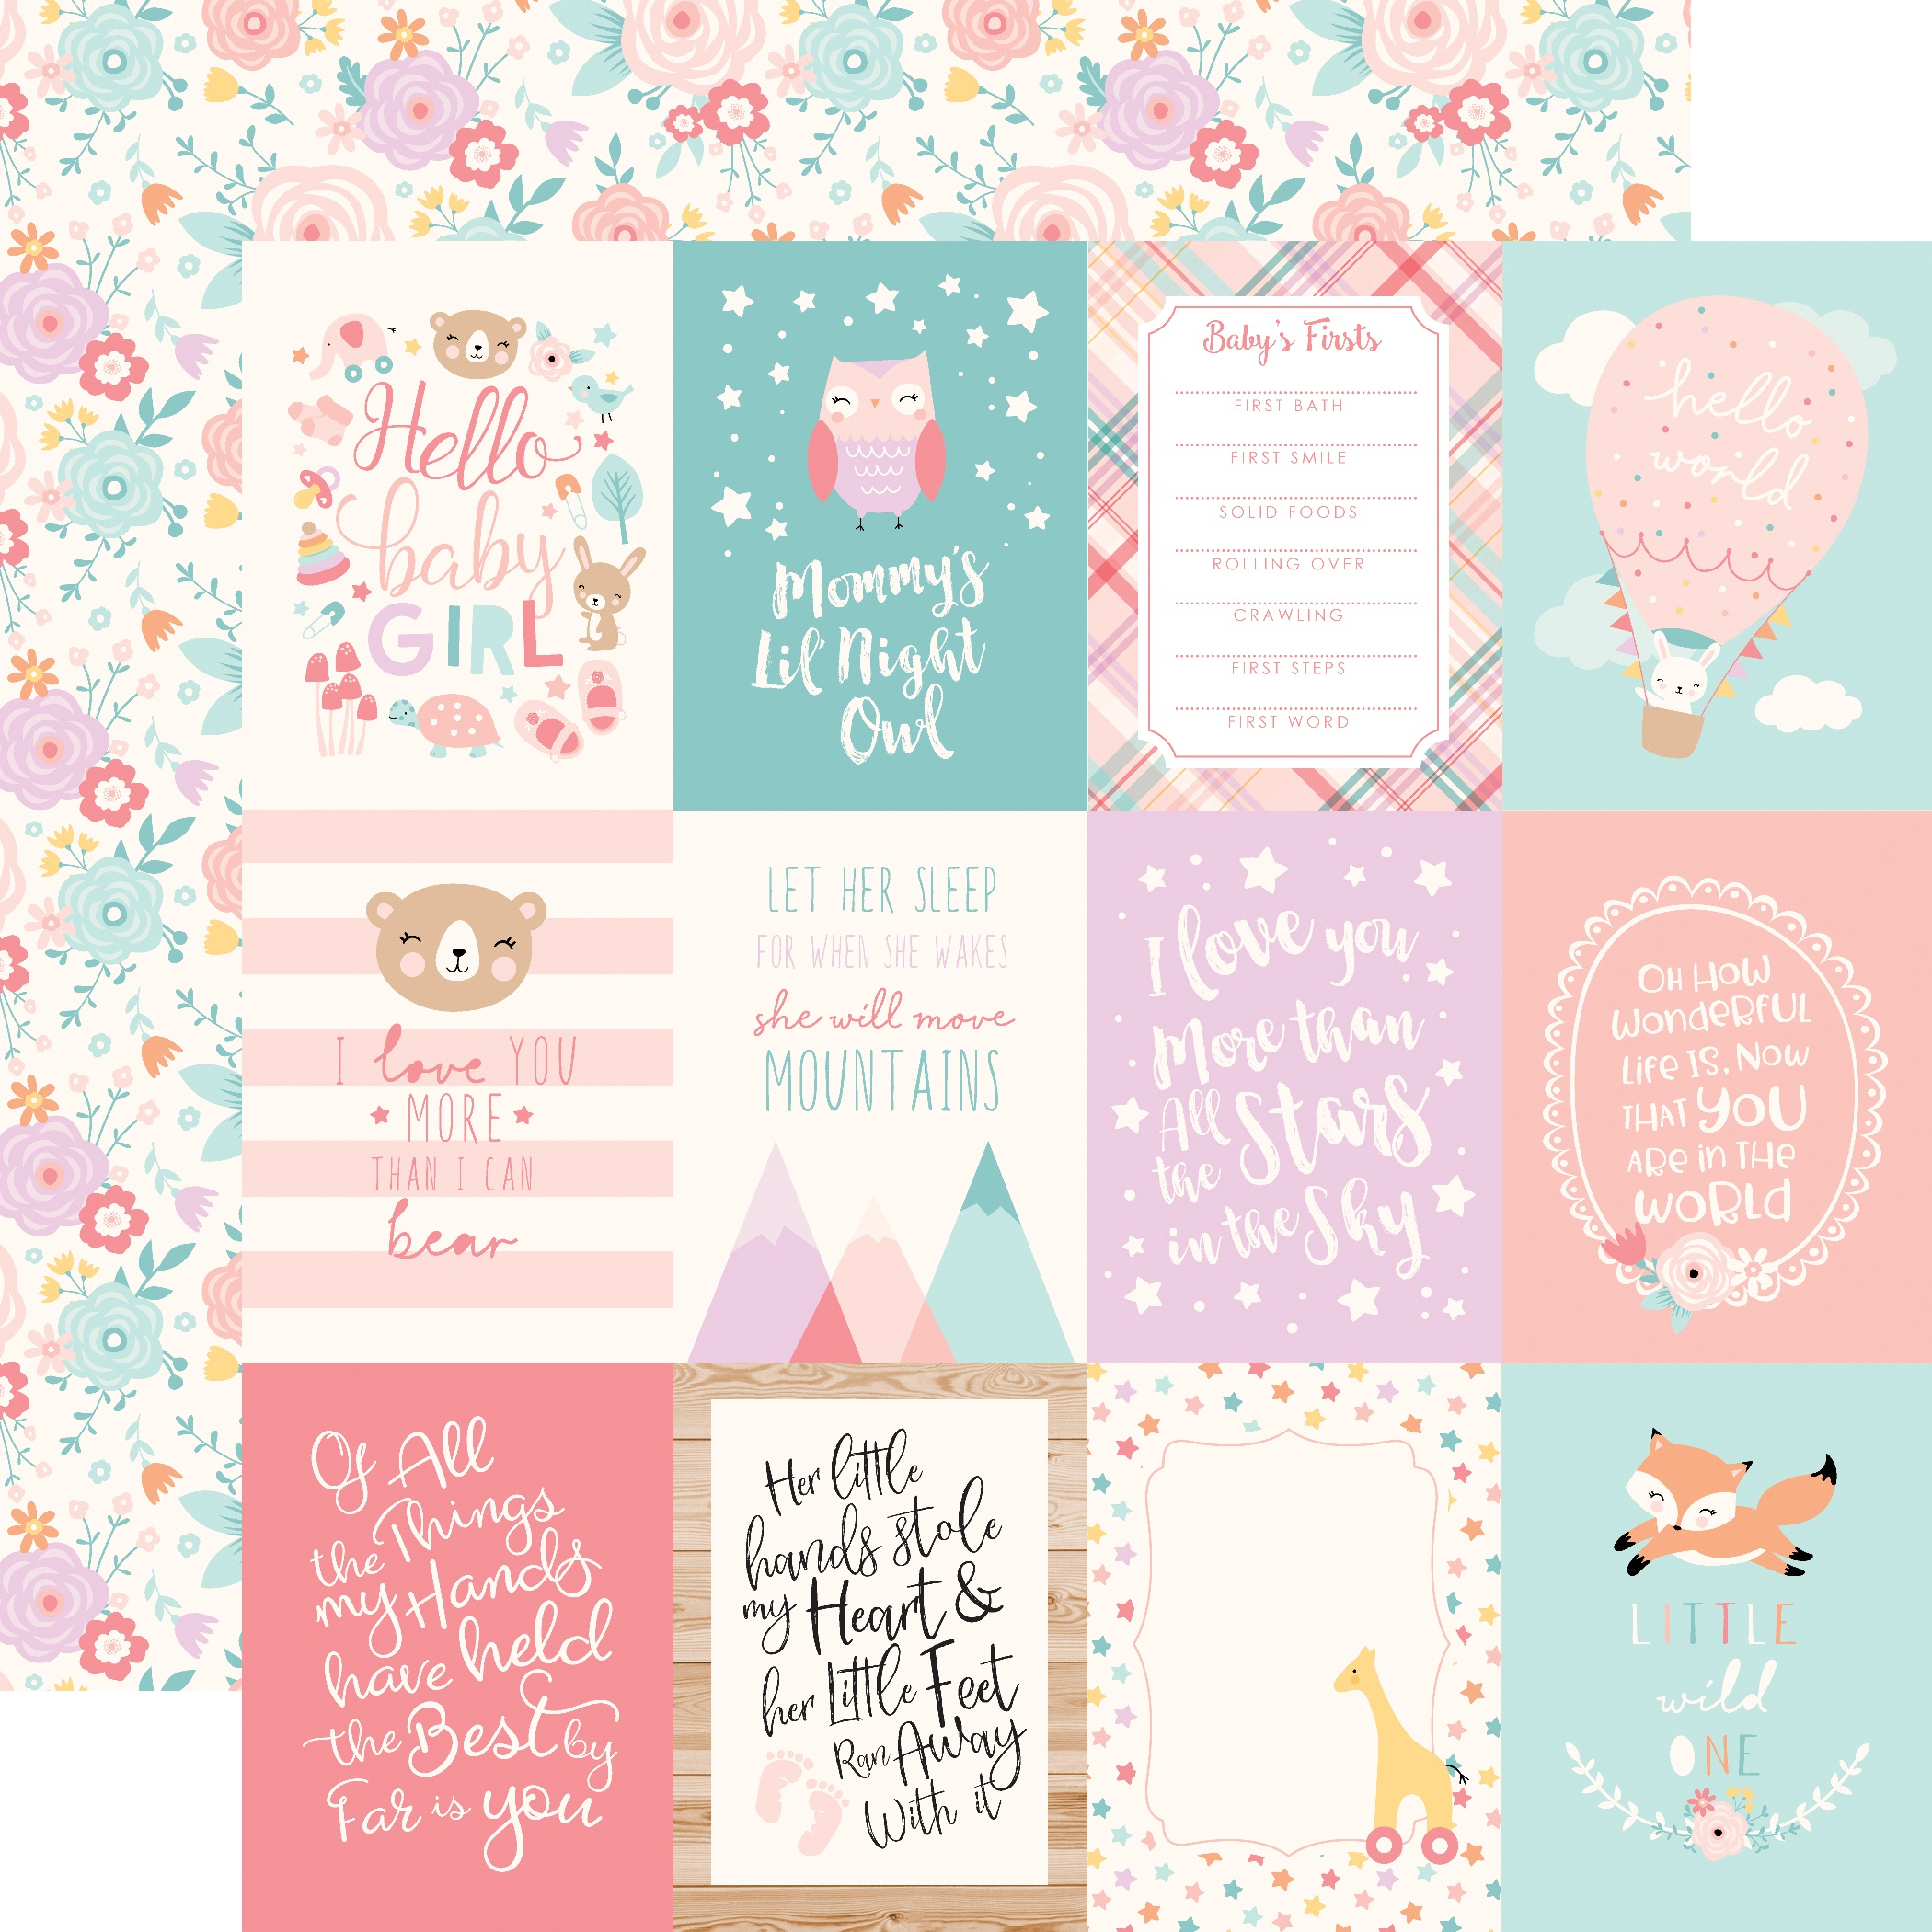 PPR - HELLO BABY IT'S A GIRL GIRL 3X4 JOURNALING CARDS